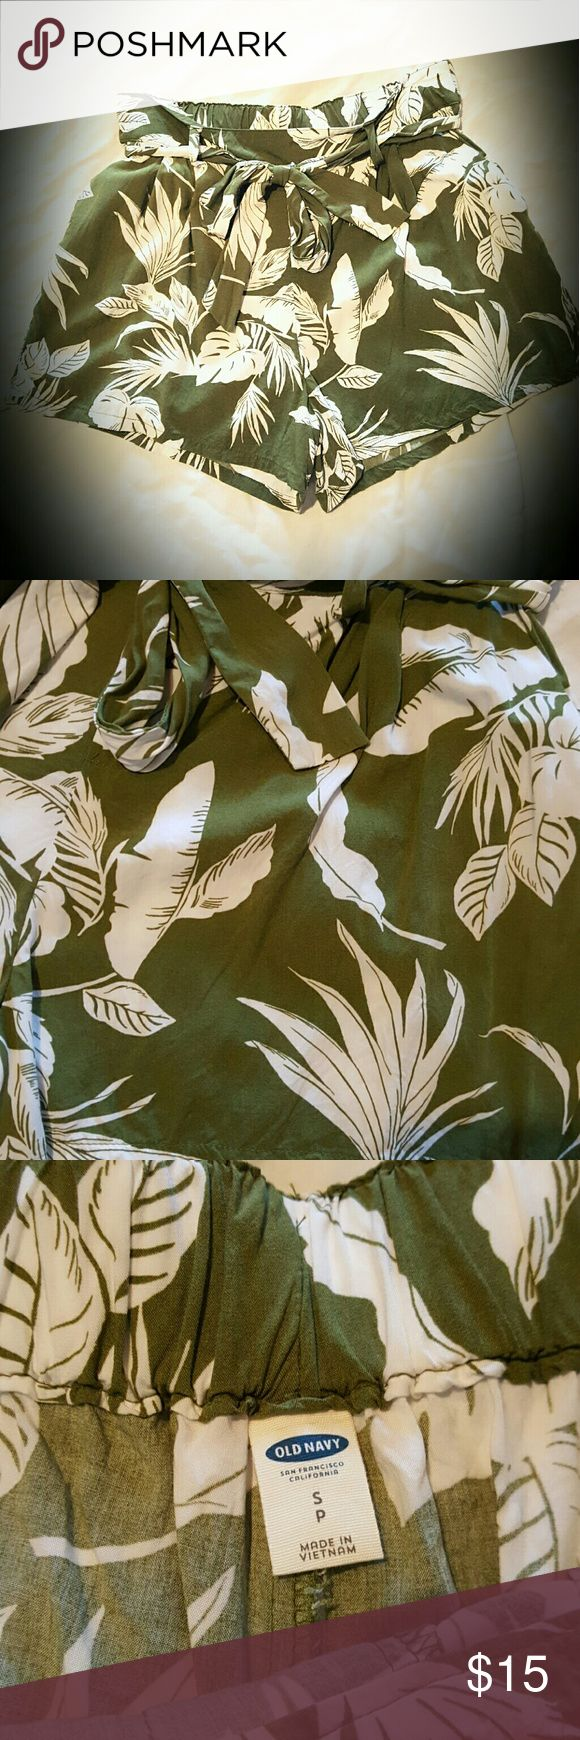 High Rise Tropical Summer Shorts Olive green and white with a tropical vibe! Flowy, light and comfortable, and they have pockets! The waist has elastic across the whole back for a good fit, and there is also the belt that ties in front. The belt is stitched onto to the shorts on the back, so it is not removeable, unless you wanted to take the stitching out. Super cute, worn once. Length is 13 inches from waist to hem. Inseam is 3 inches. Size is small petite but would also fit a medium. 100%…